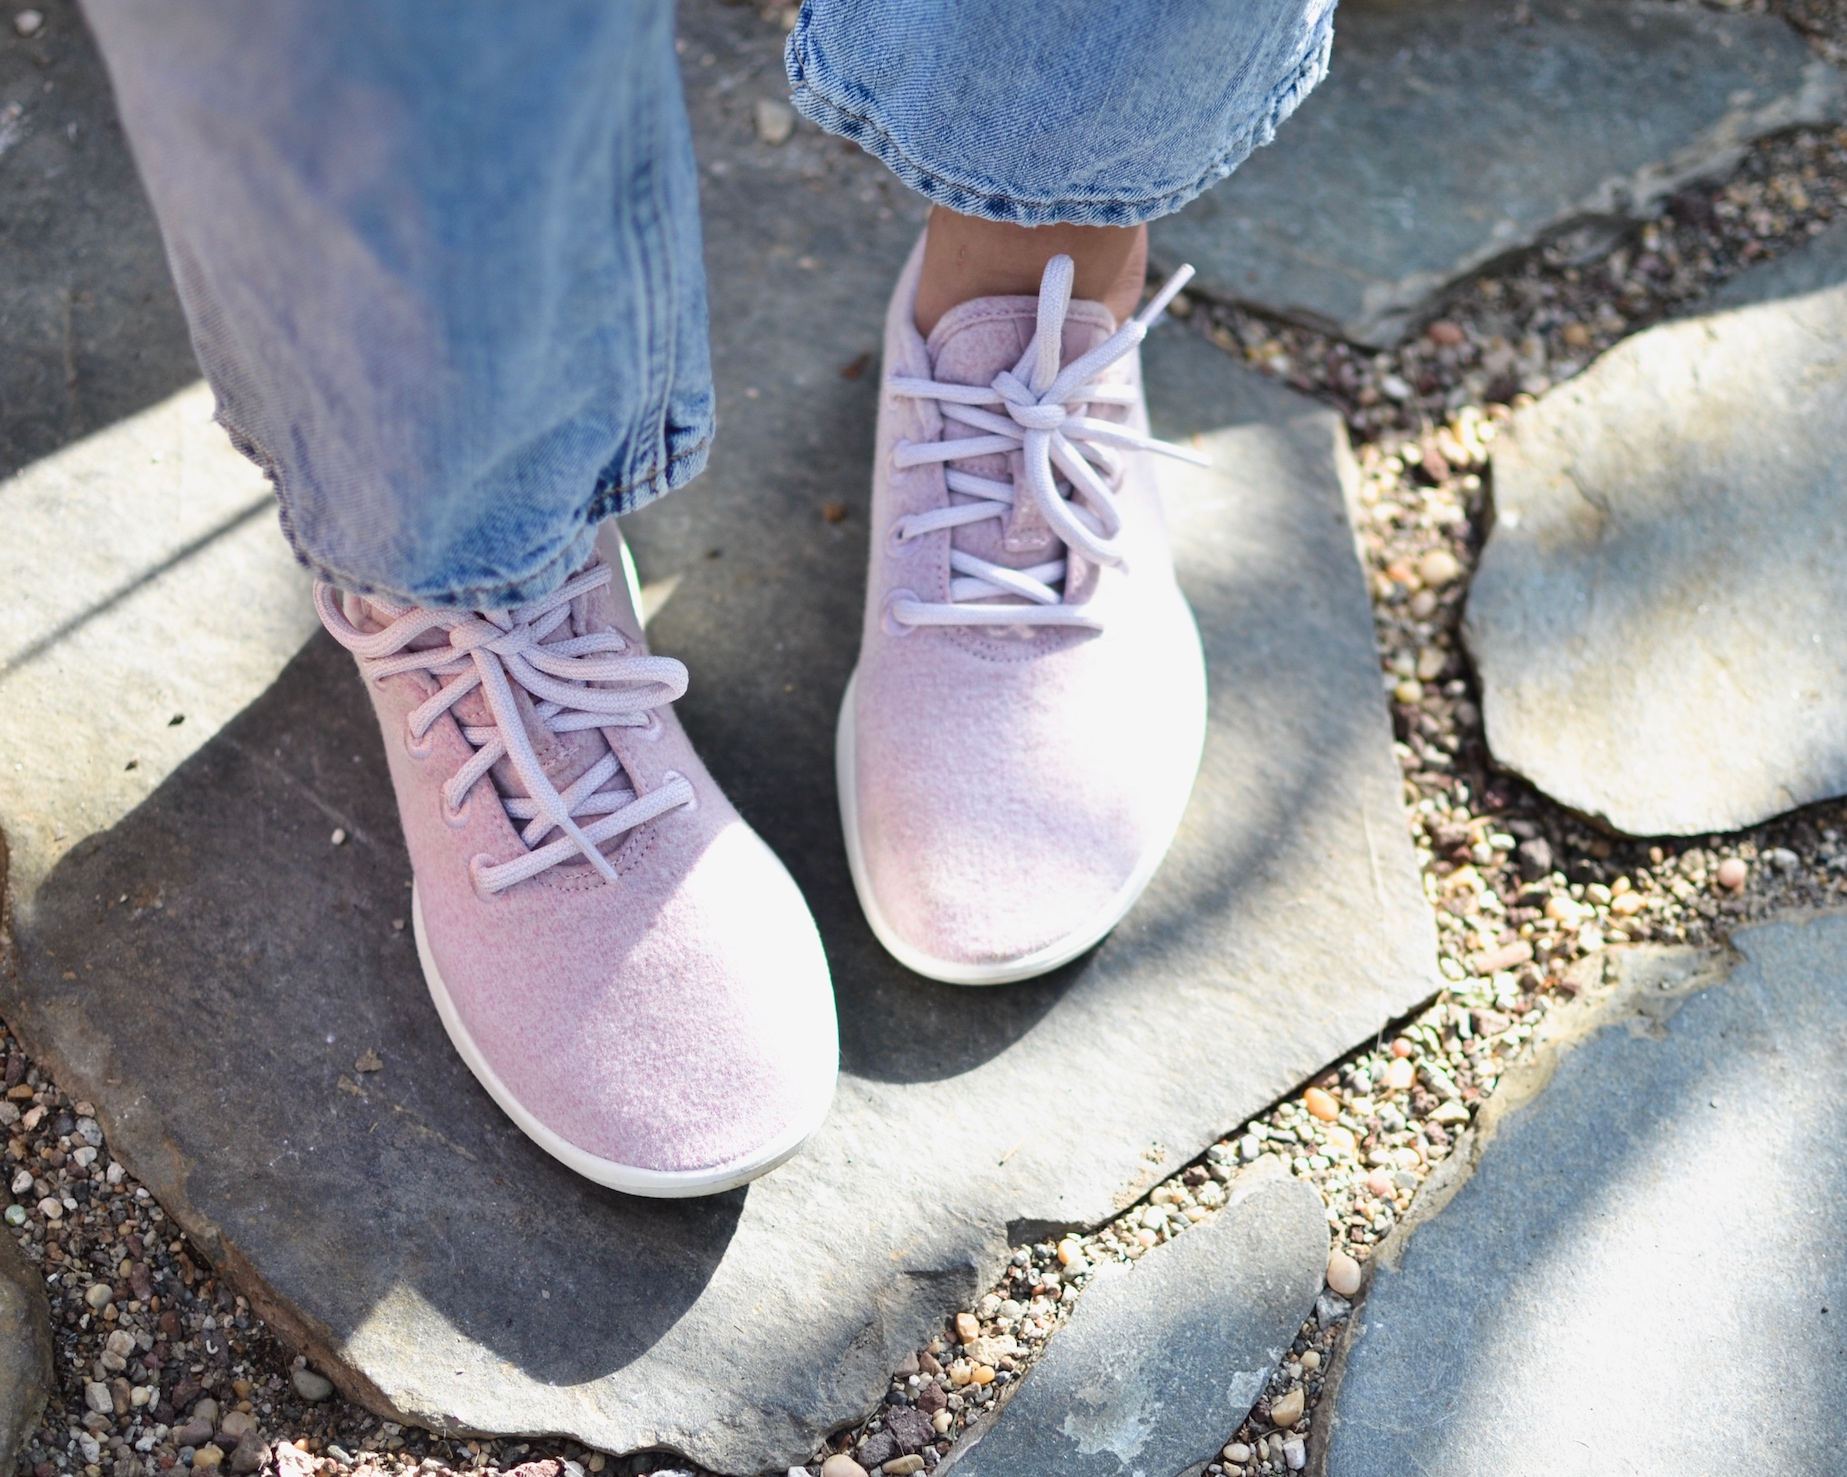 Allbirds natural pink sneakers // A Week Of Empowered Outfits With Cat Chiang From Restitchstance on The Good Trade